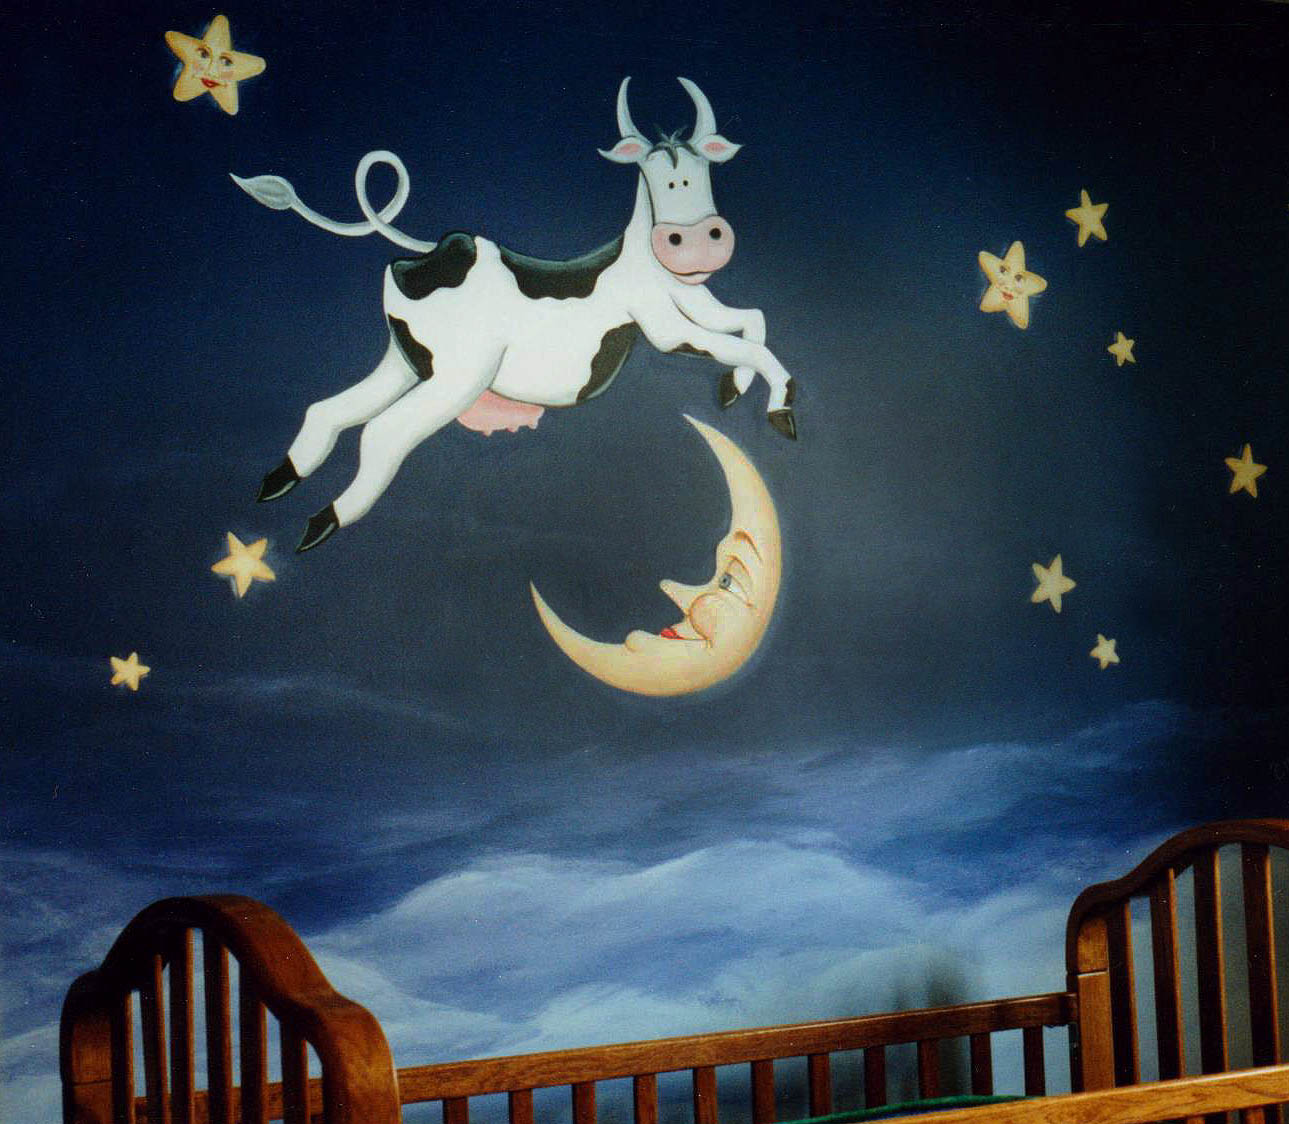 Cow Jumped Over Moon Mural 001.jpg